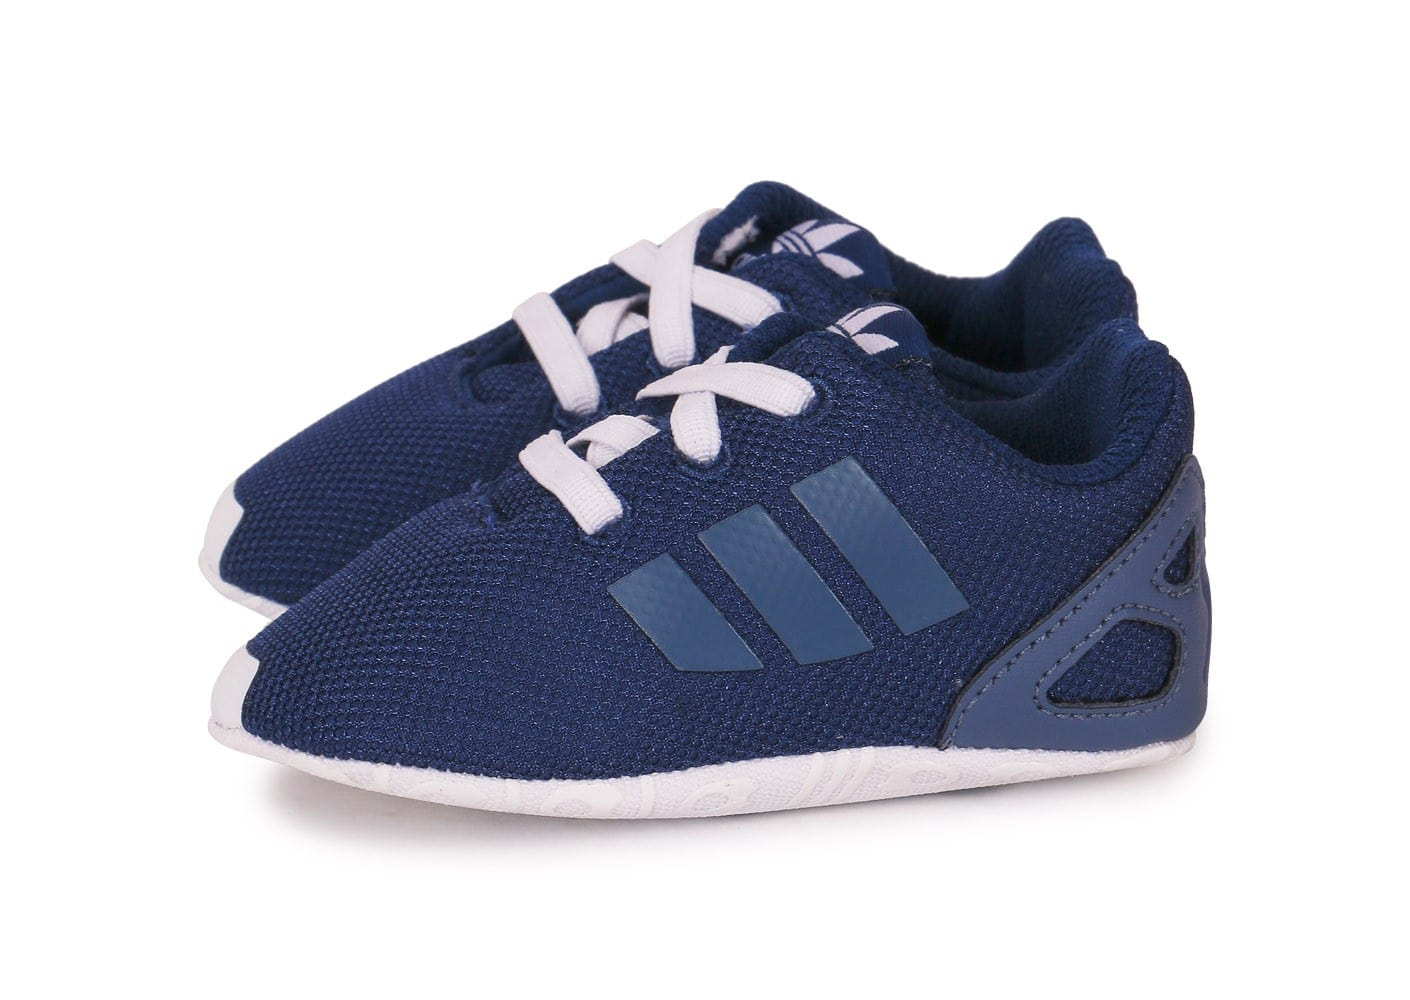 adidas zx flux b b bleu fonc chaussures adidas chausport. Black Bedroom Furniture Sets. Home Design Ideas